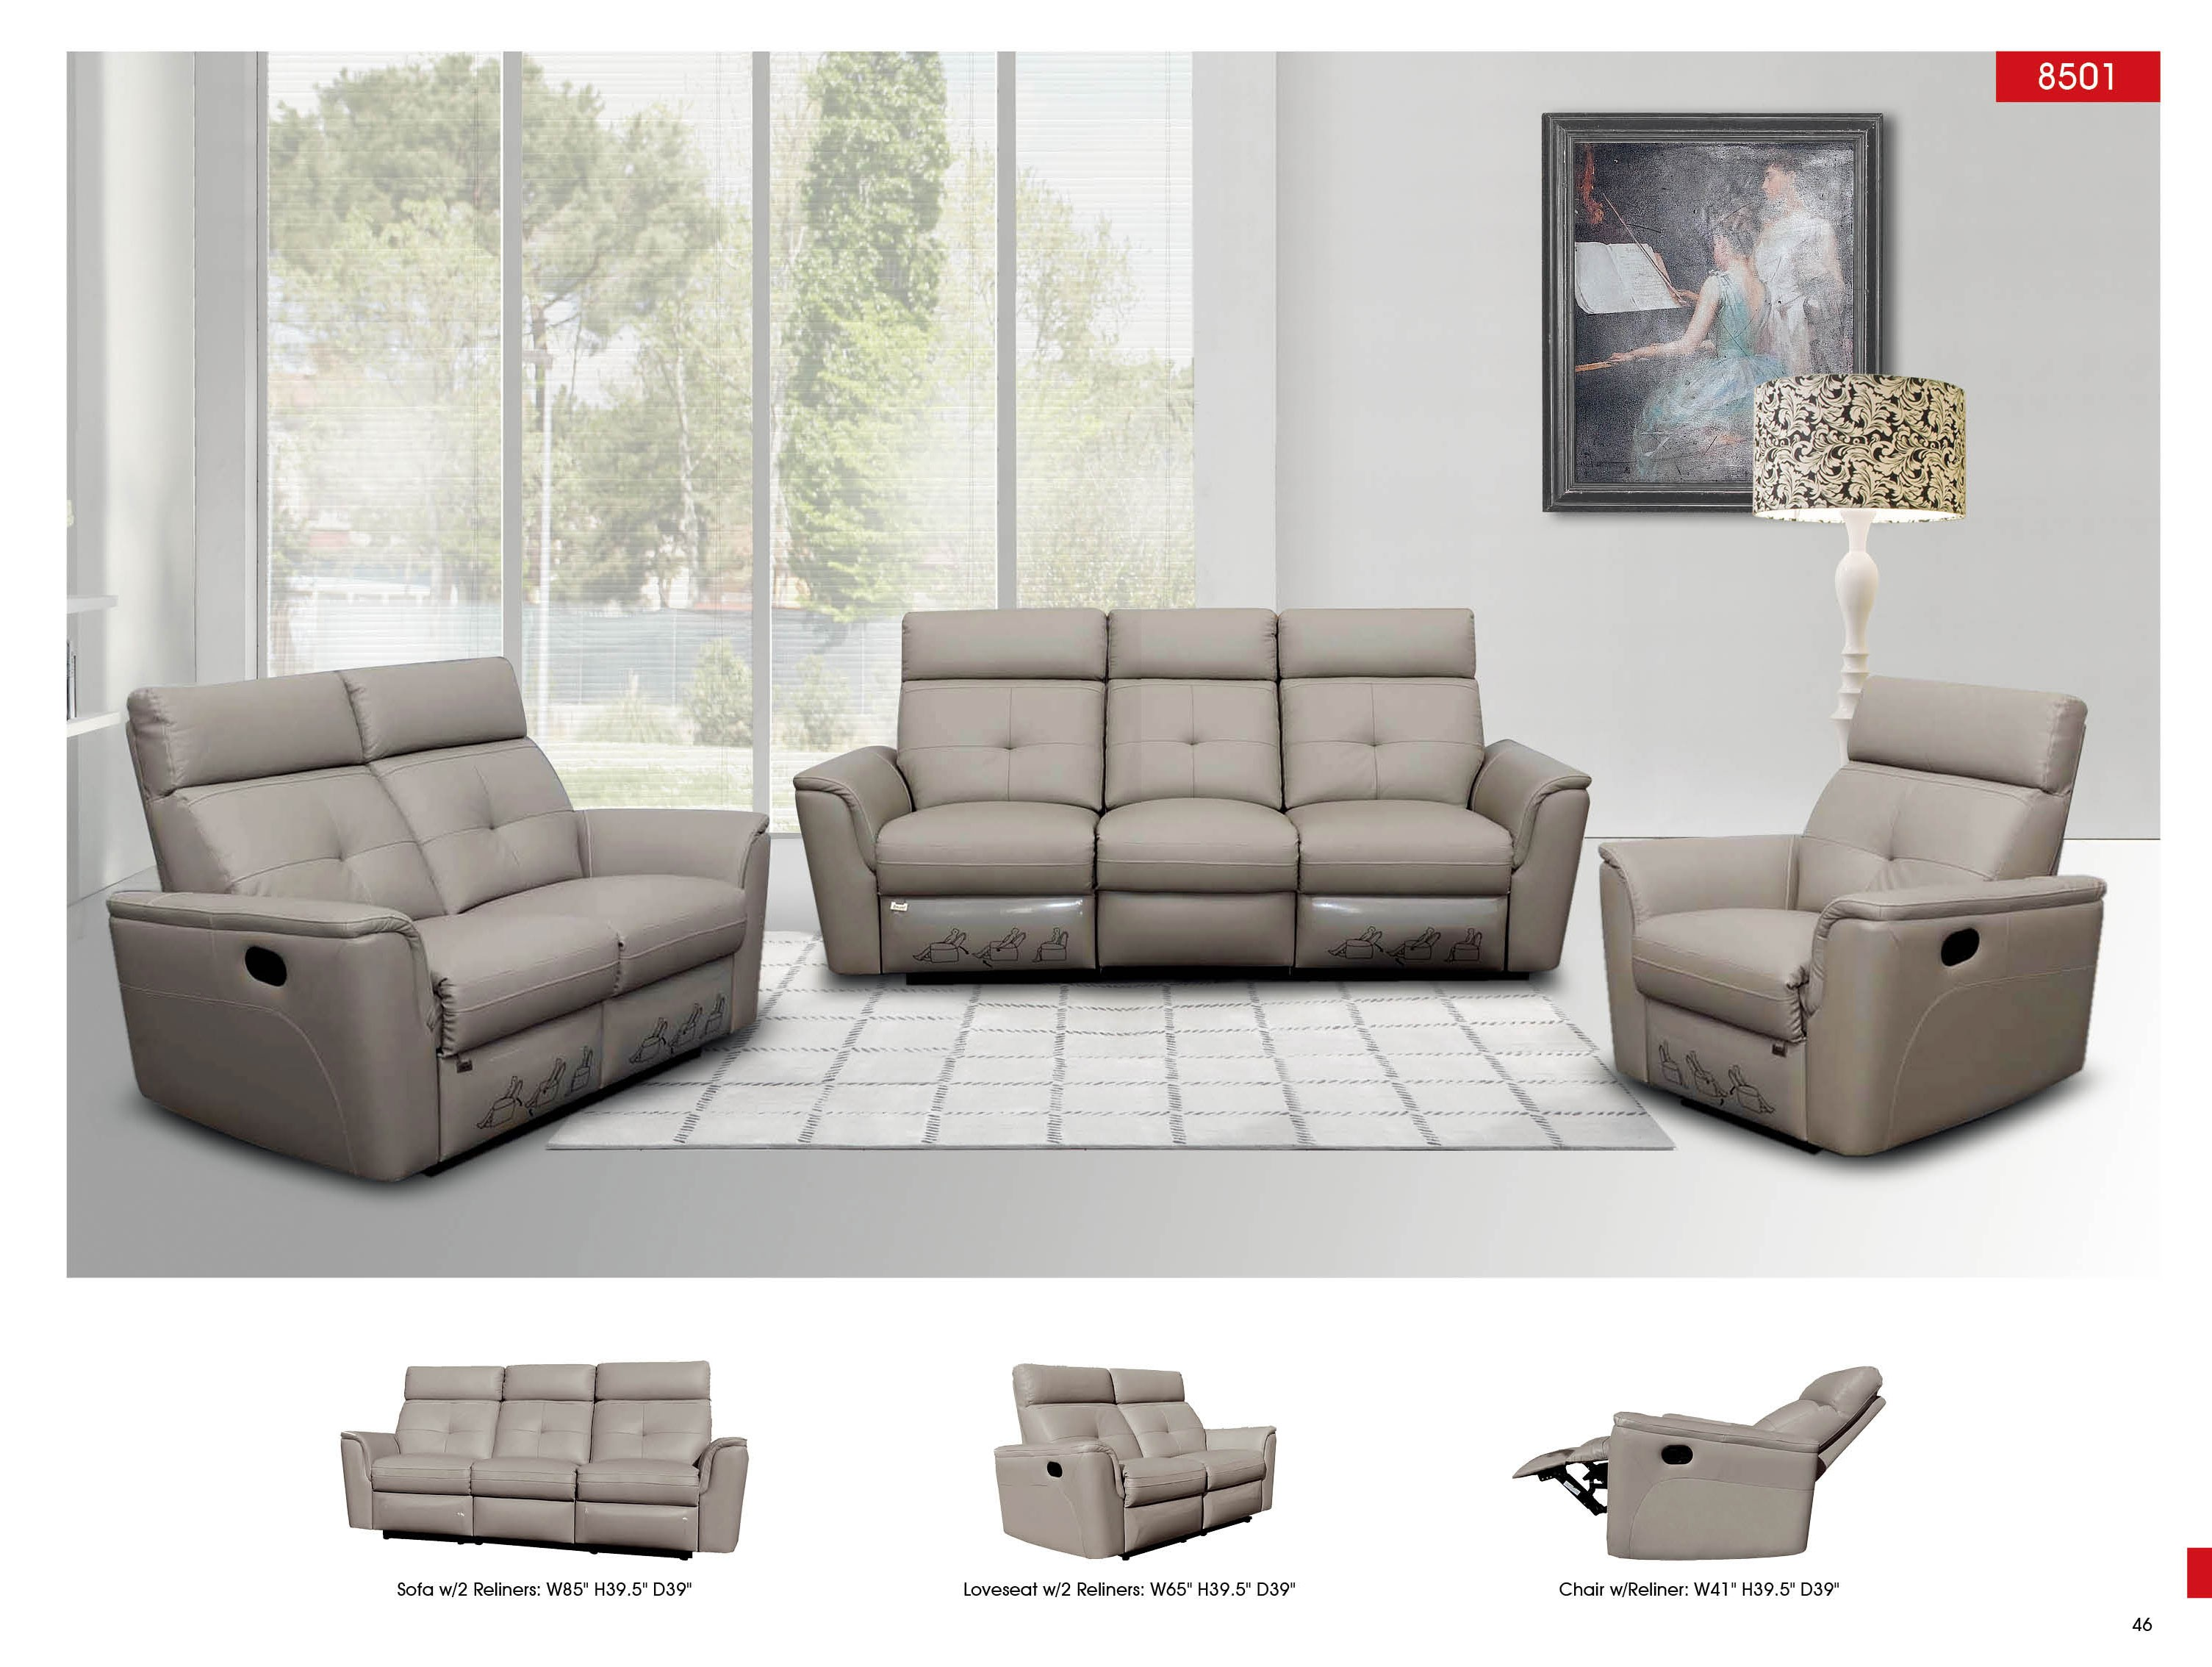 8501 contemporary contemporary reclining leather sofa nova for Contemporary living room furniture sets